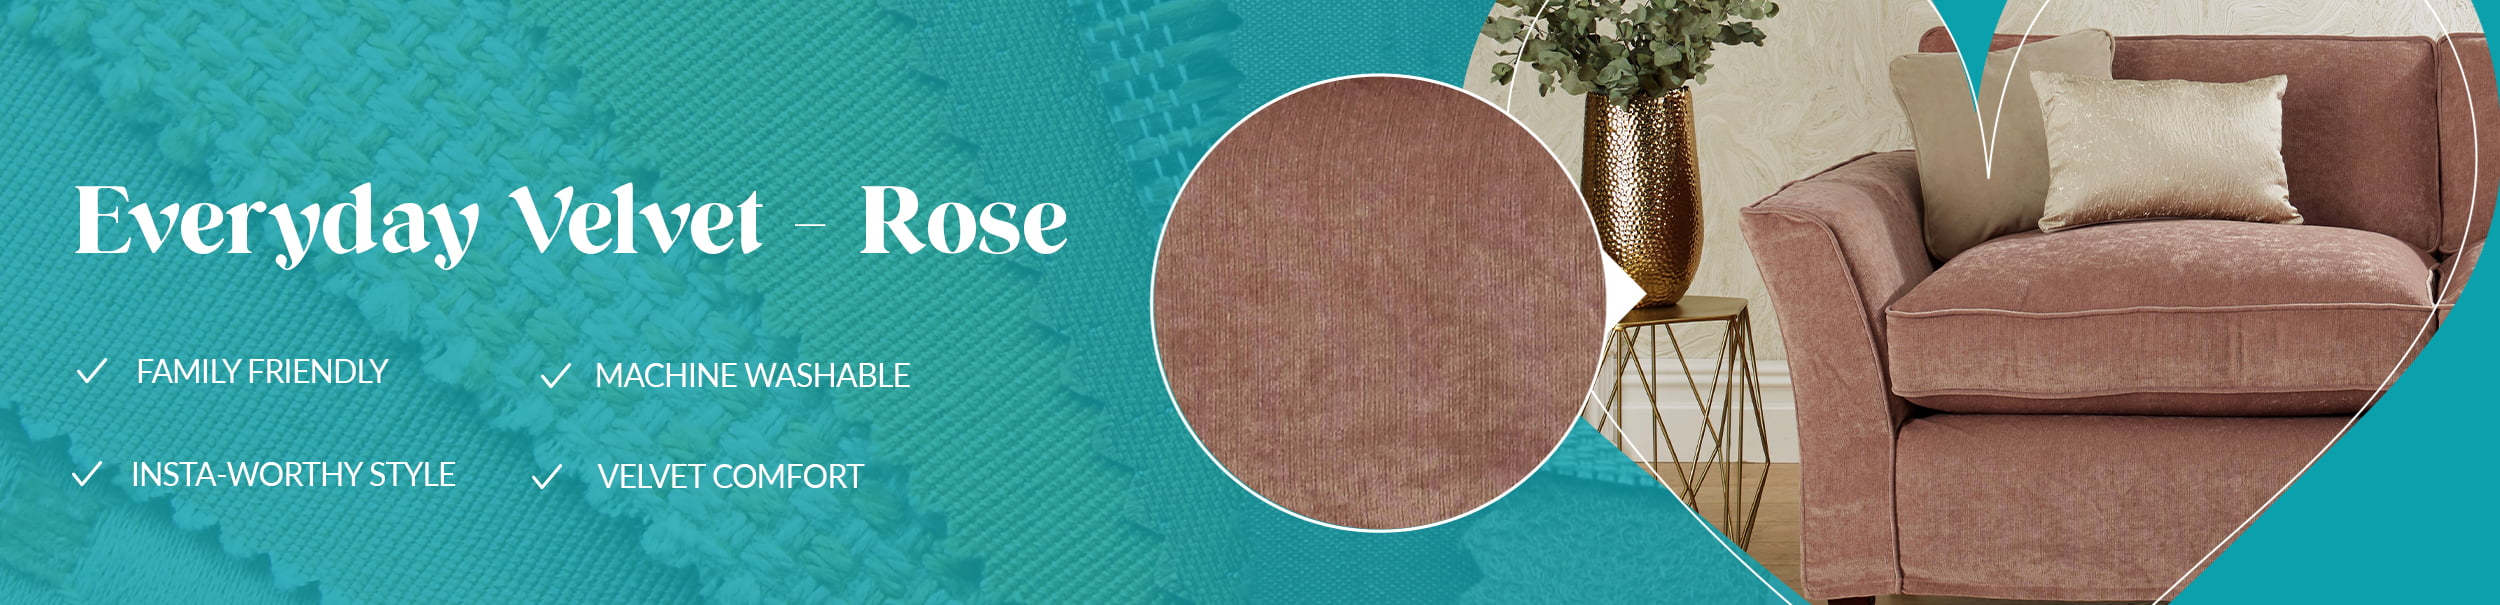 Everyday Velvet - Rose, our favourite fabric this month for replacement furniture covers